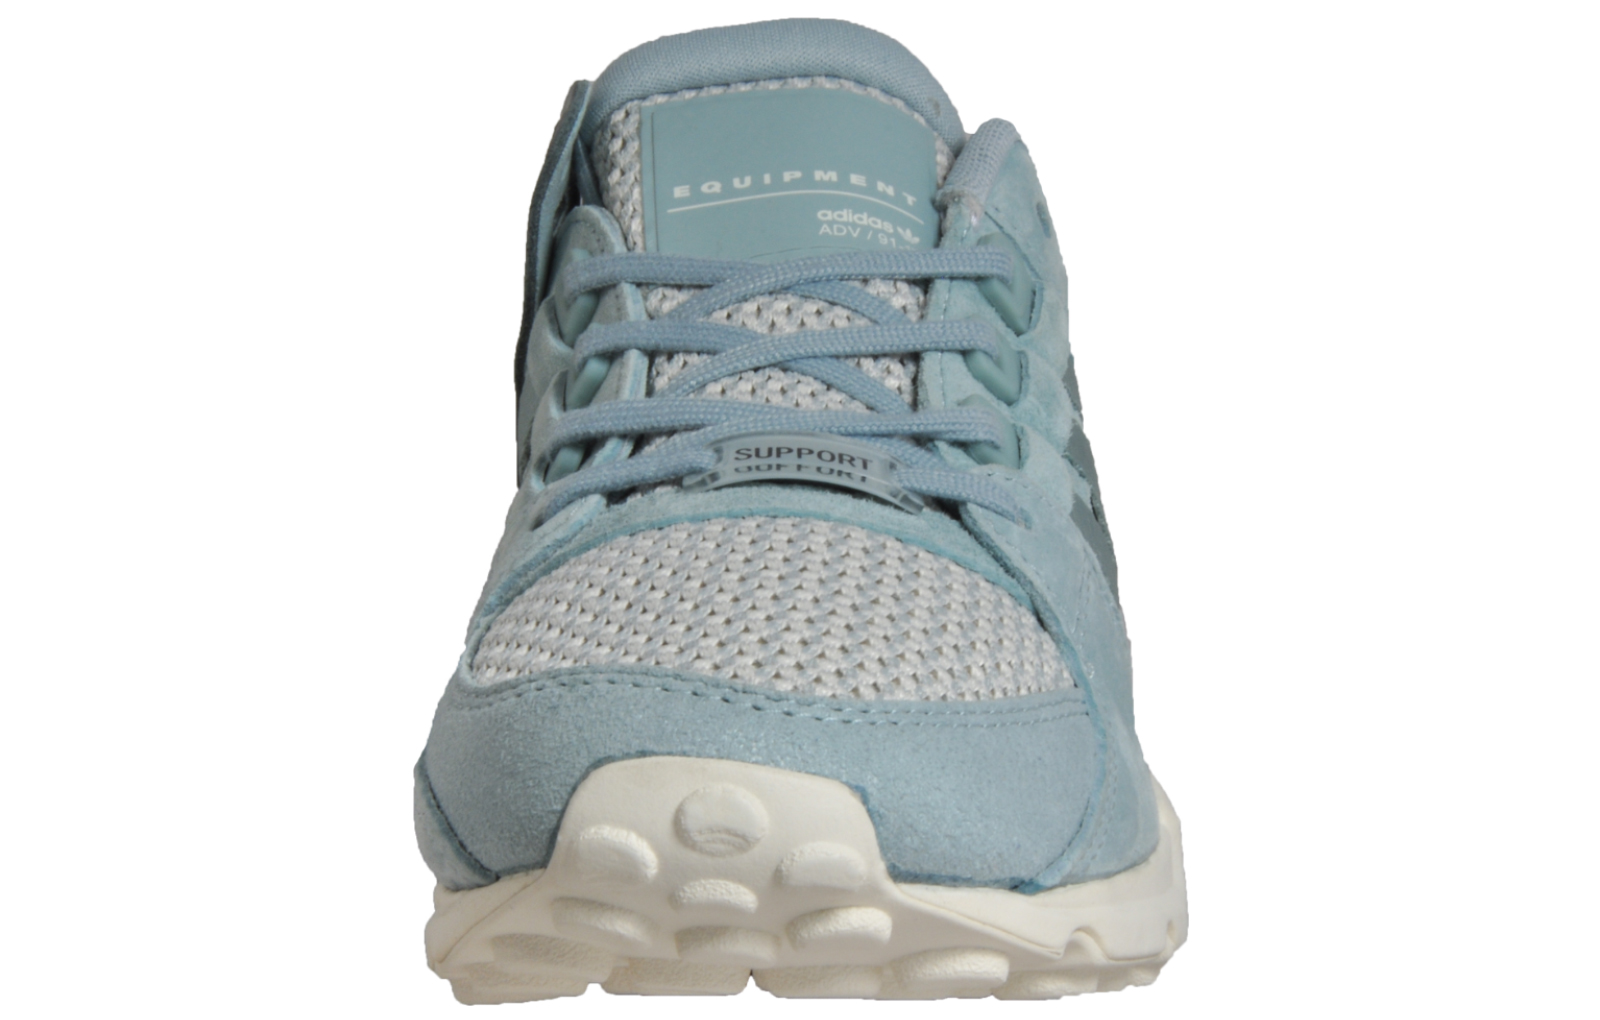 ea7ee370dafd Details about Adidas Originals EQT Support RF Women s Fitness Gym Workout  Trainers Green